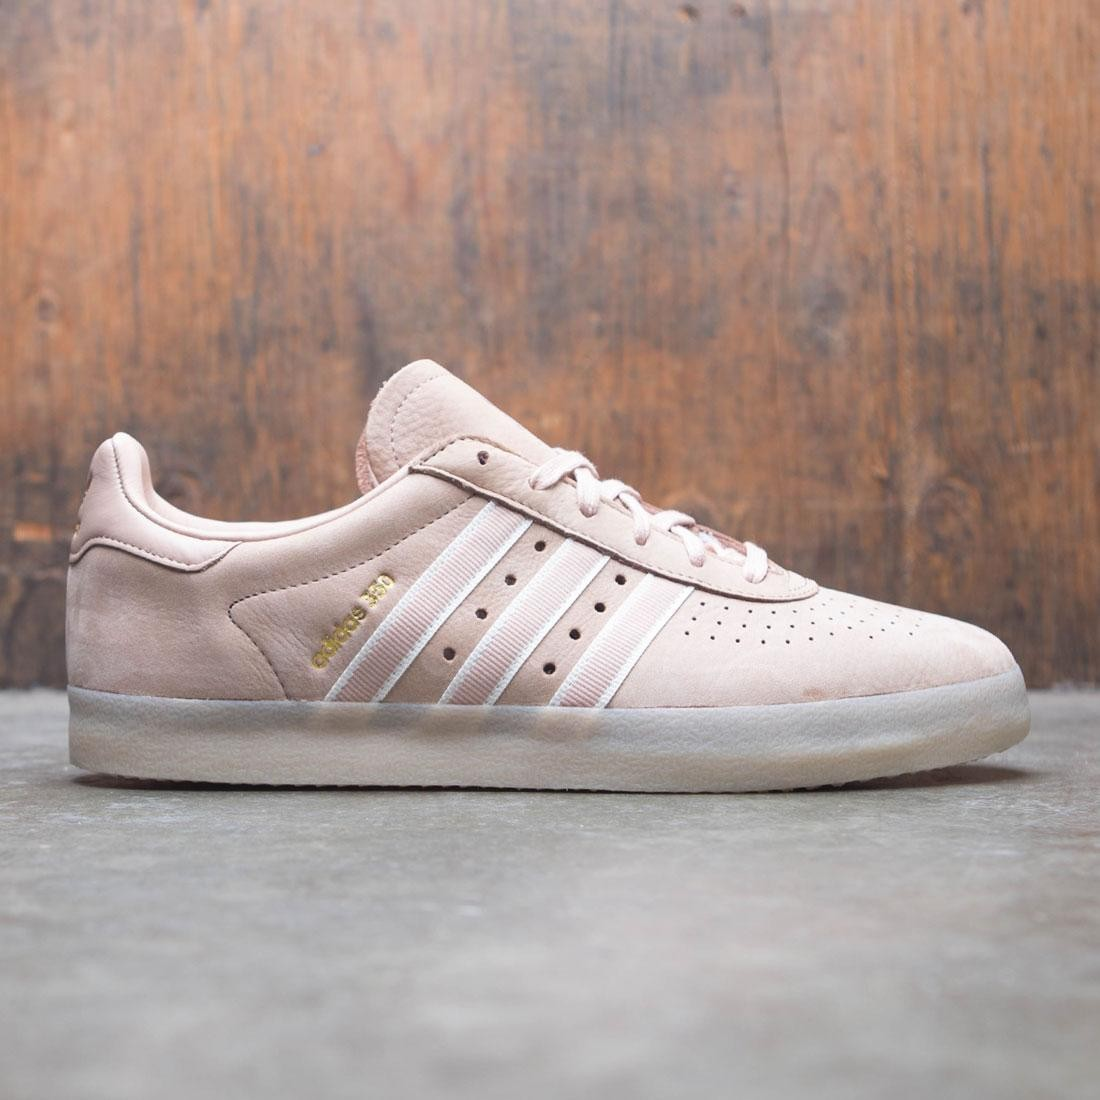 various colors 004de fead4 Adidas Men Oyster Holdings Adidas 350 pink ash pearl chalk white metallic  gold